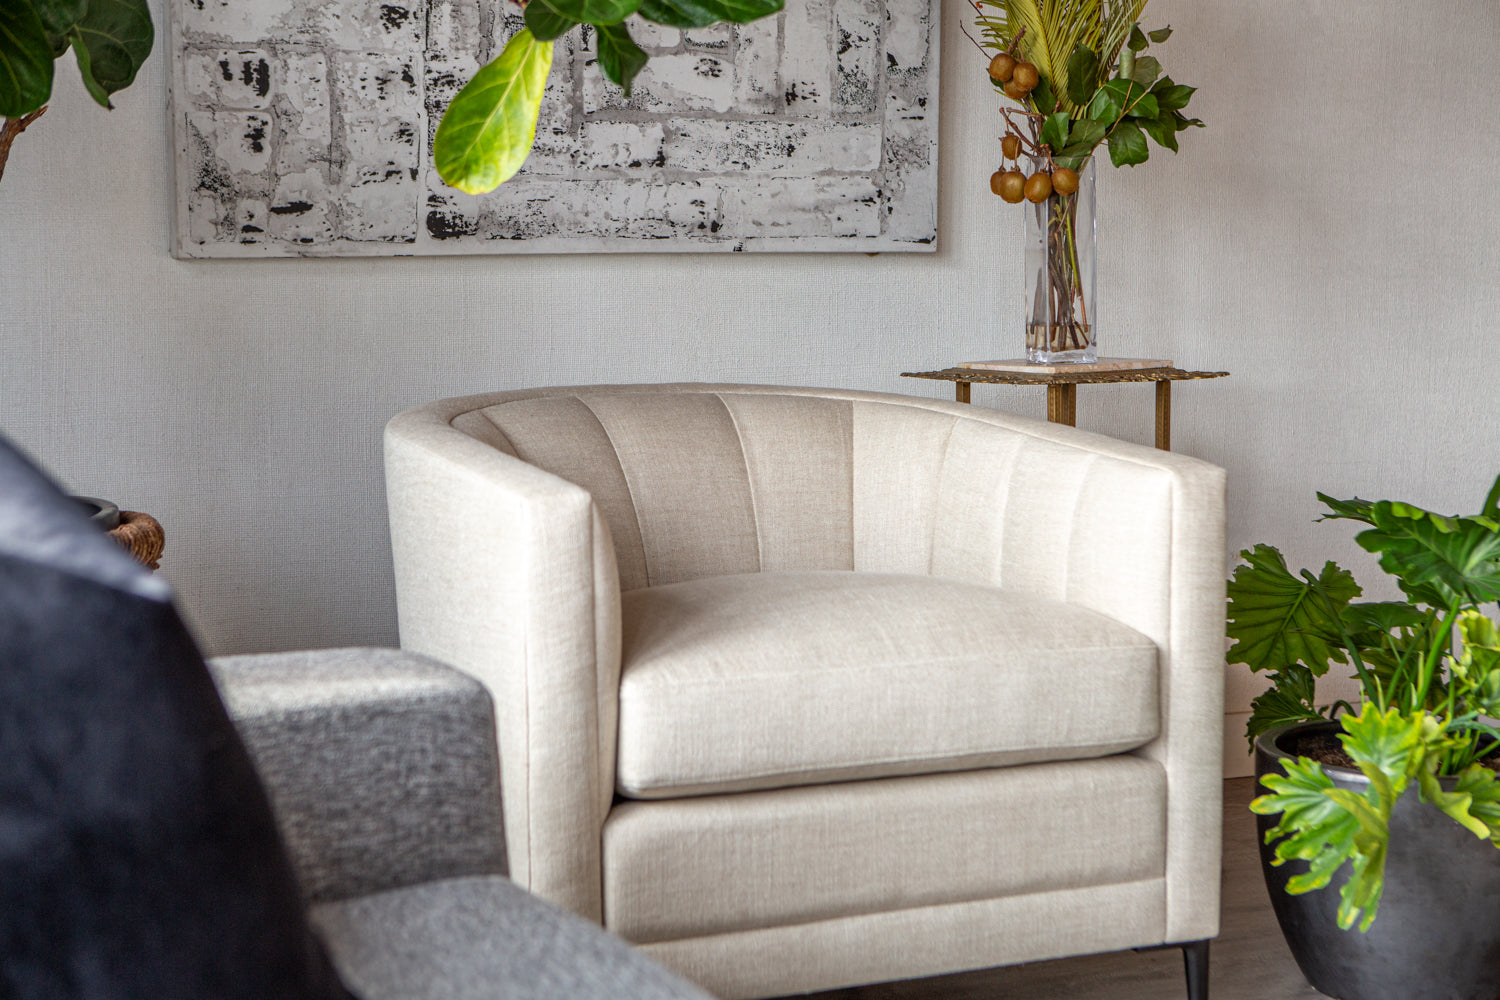 Close up view within a room scene of the Coco Chair by ffabb home upholstered in Linen- Oatmeal